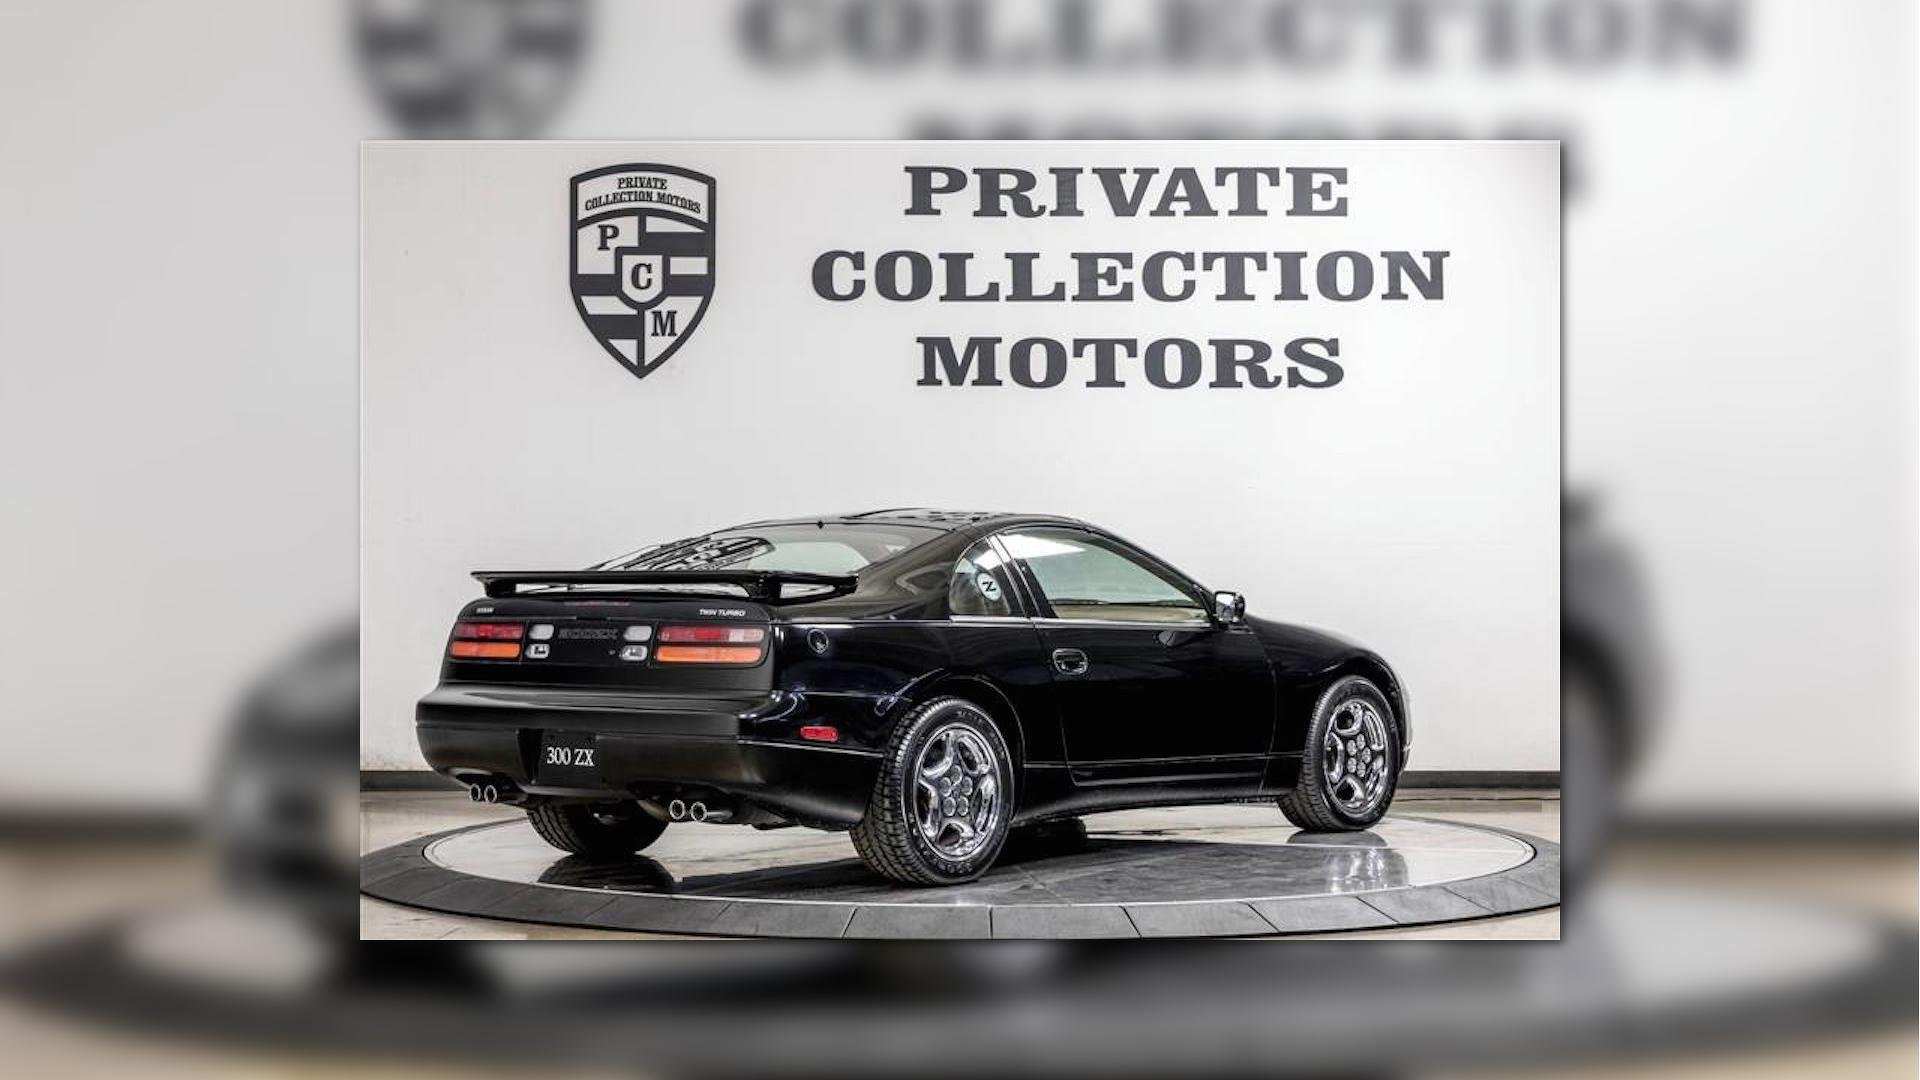 is this 1996 nissan 300zx turbo really worth $60,000?